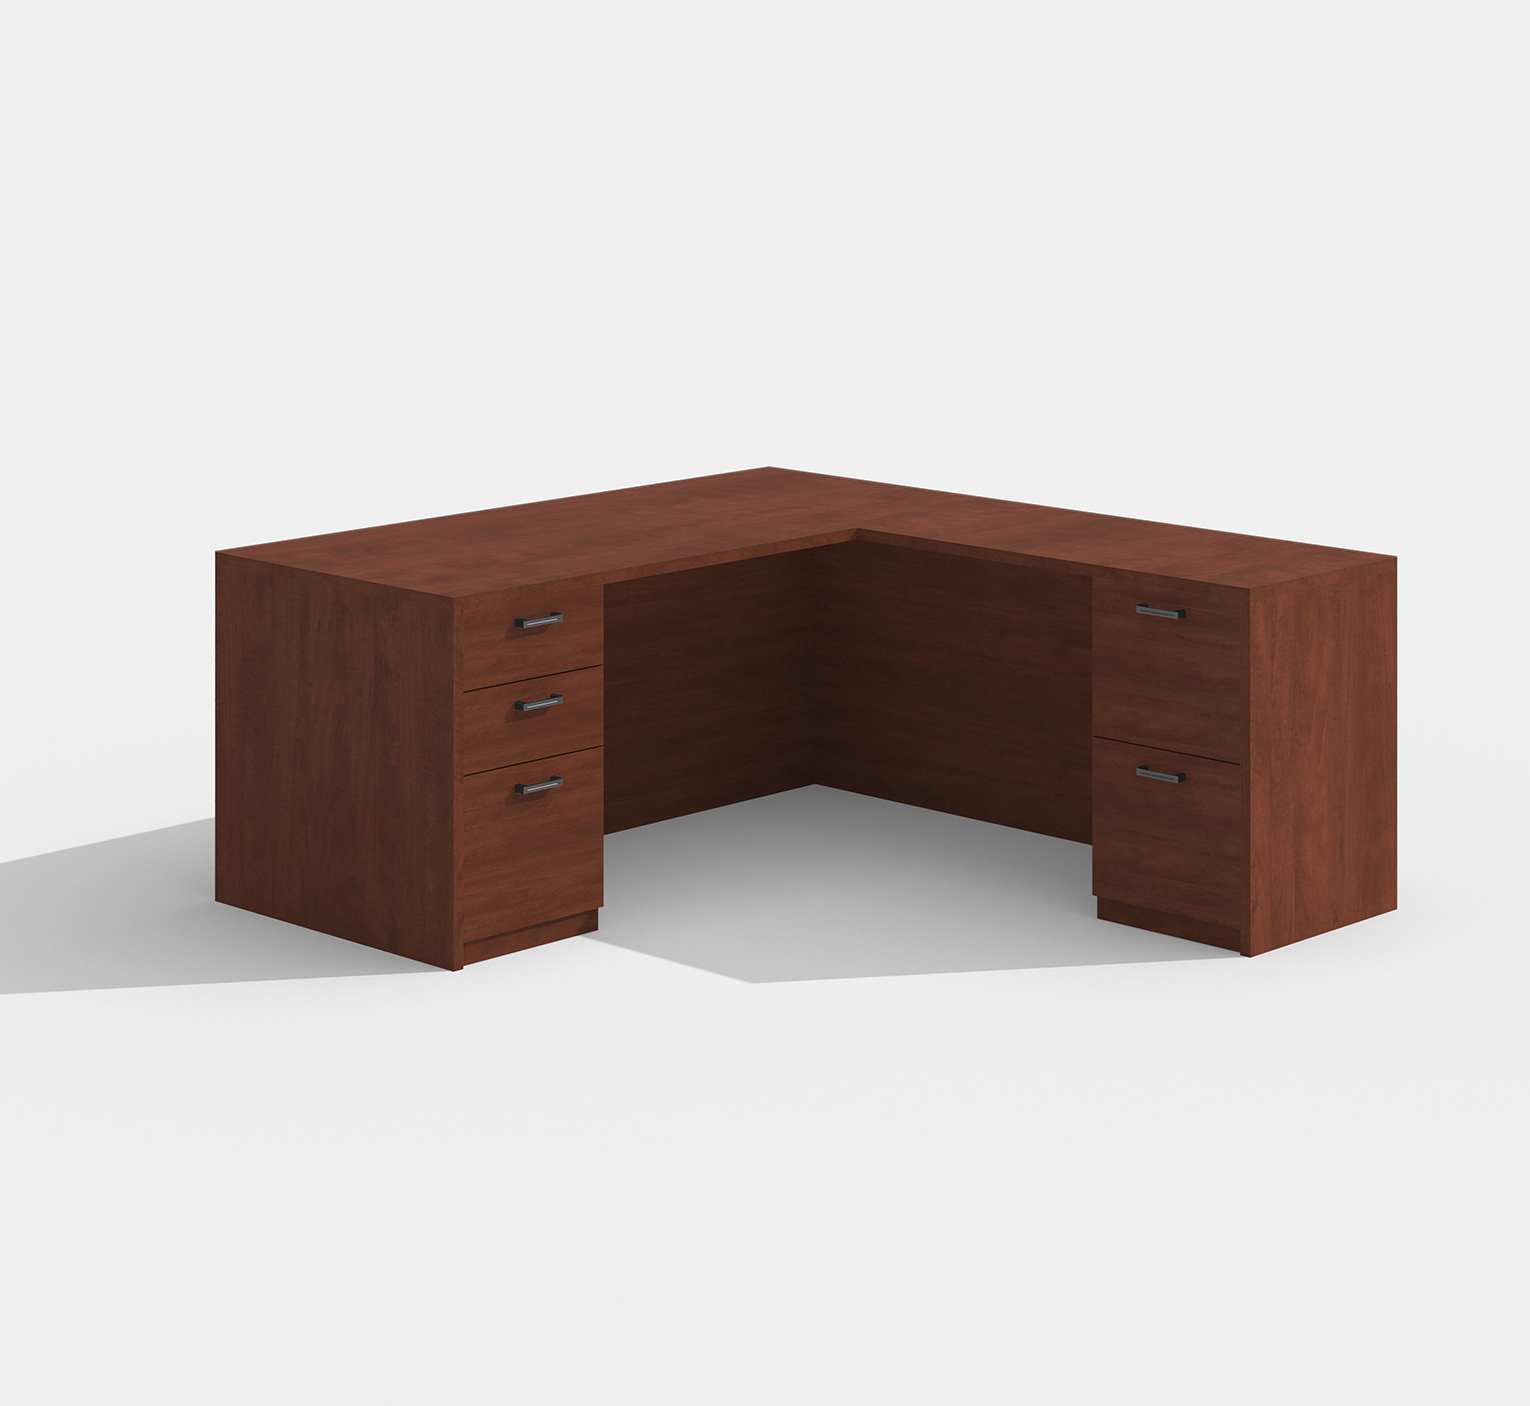 cherryman amber l-desk am-312n in cherry